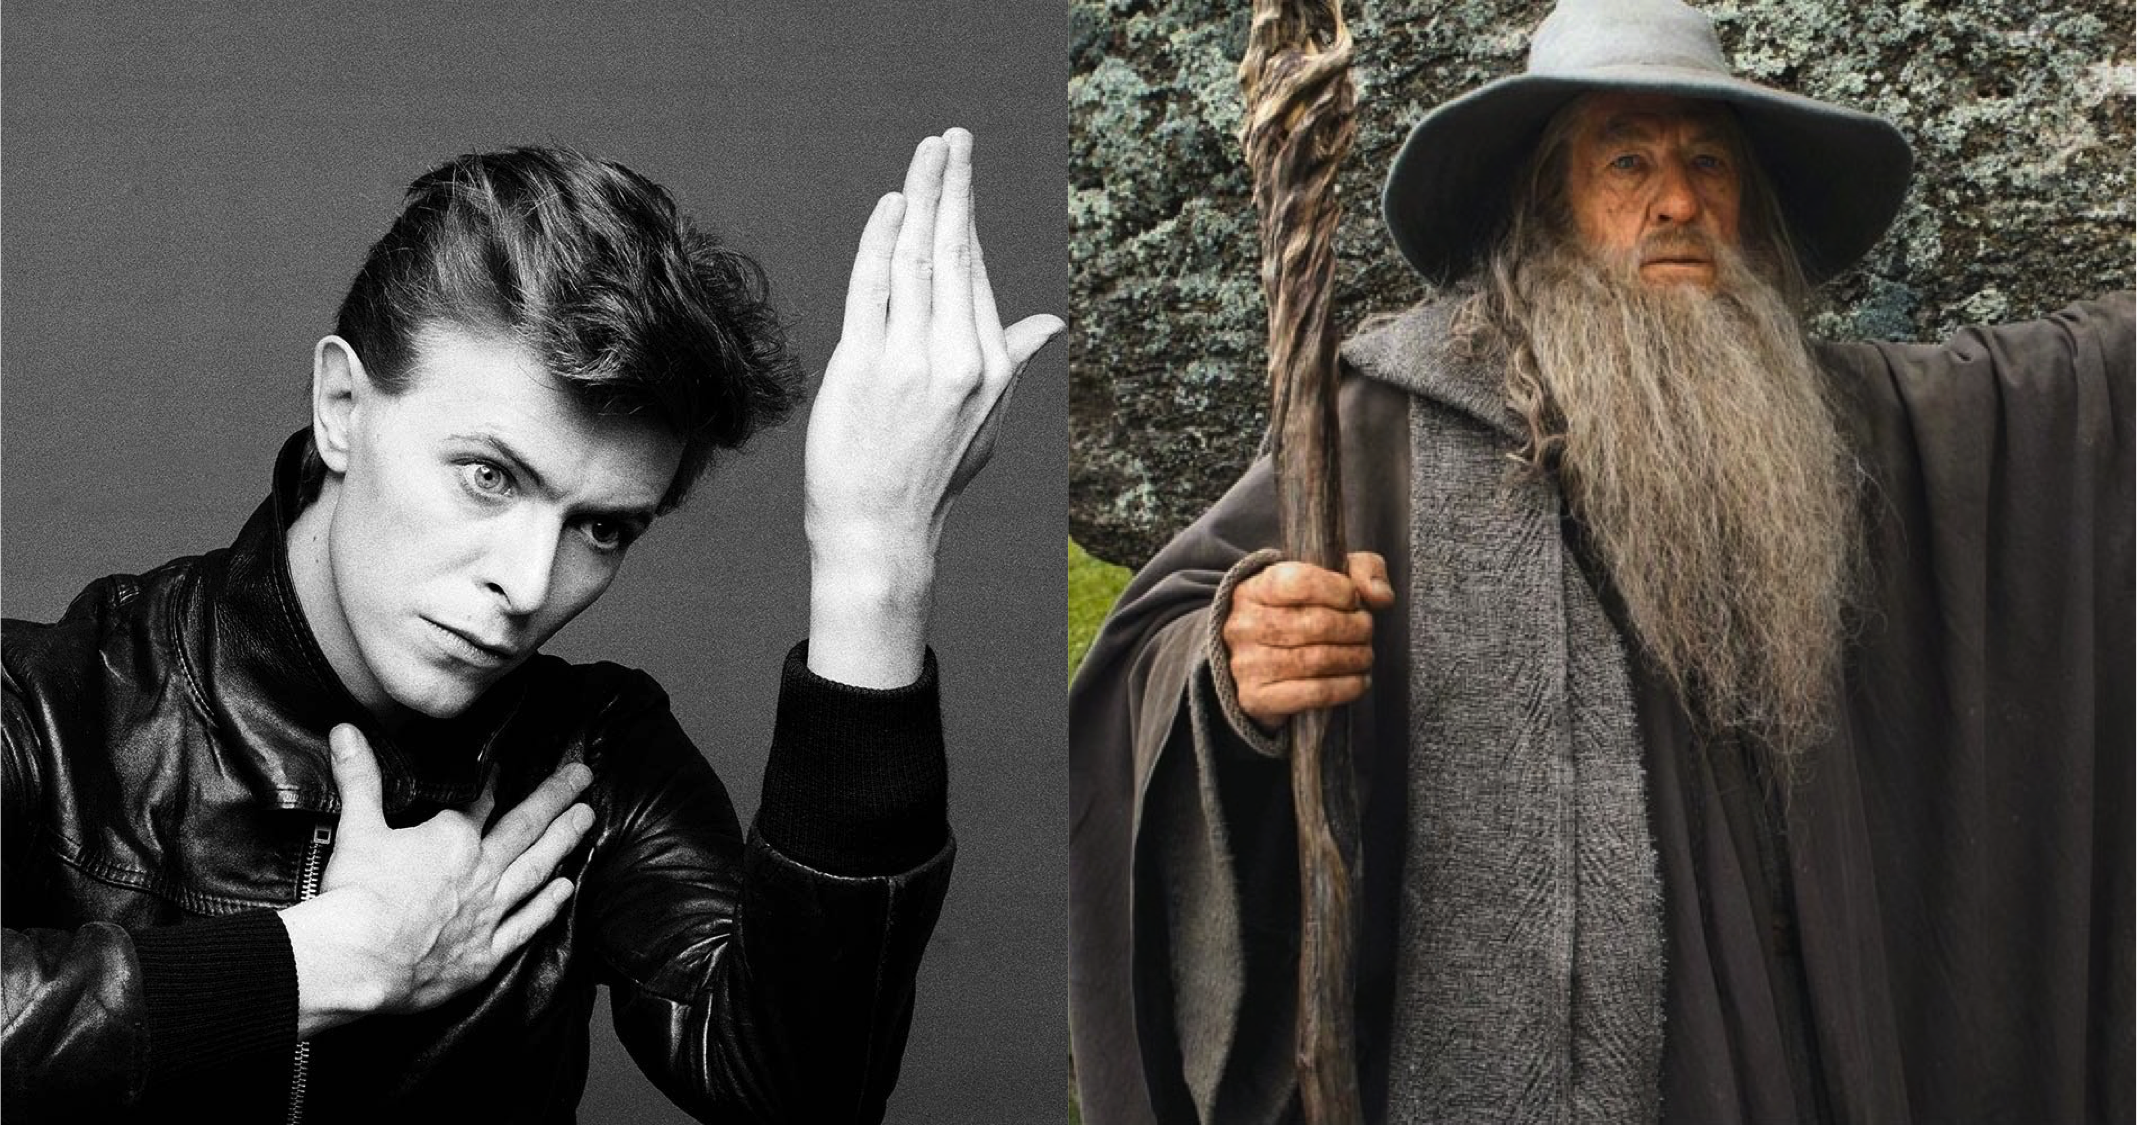 David-Bowie-Gandalf